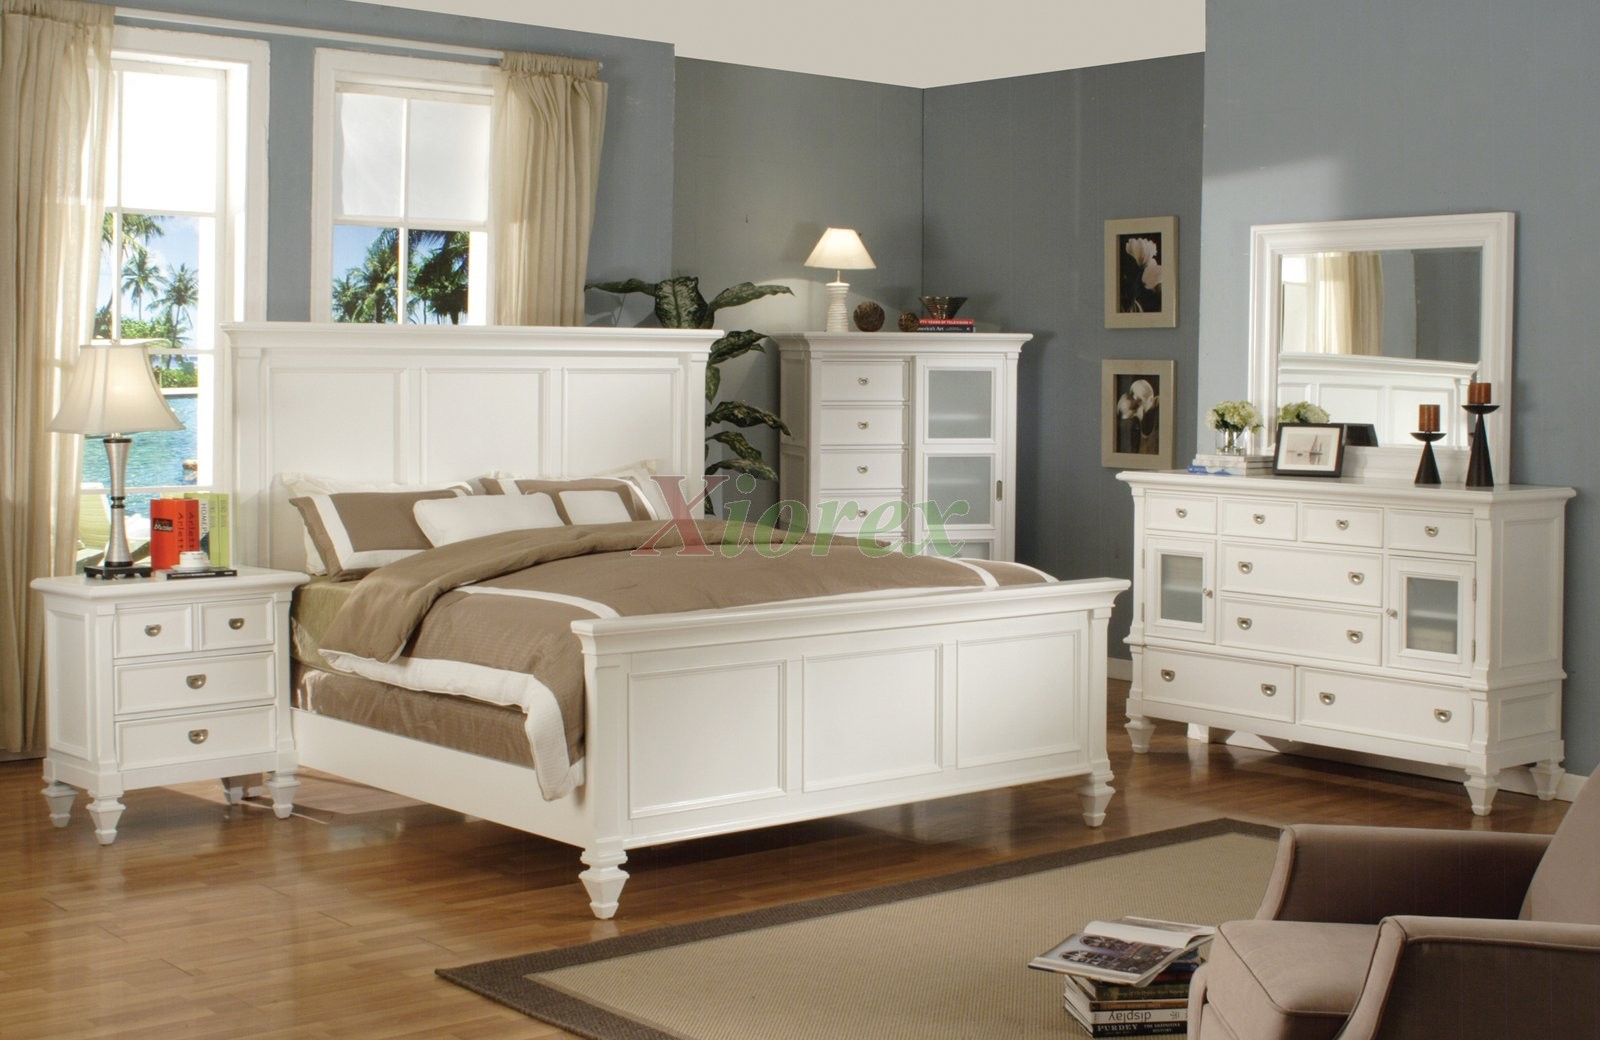 Best ideas about White Queen Bedroom Set . Save or Pin Bedroom Furniture Set 126 Now.